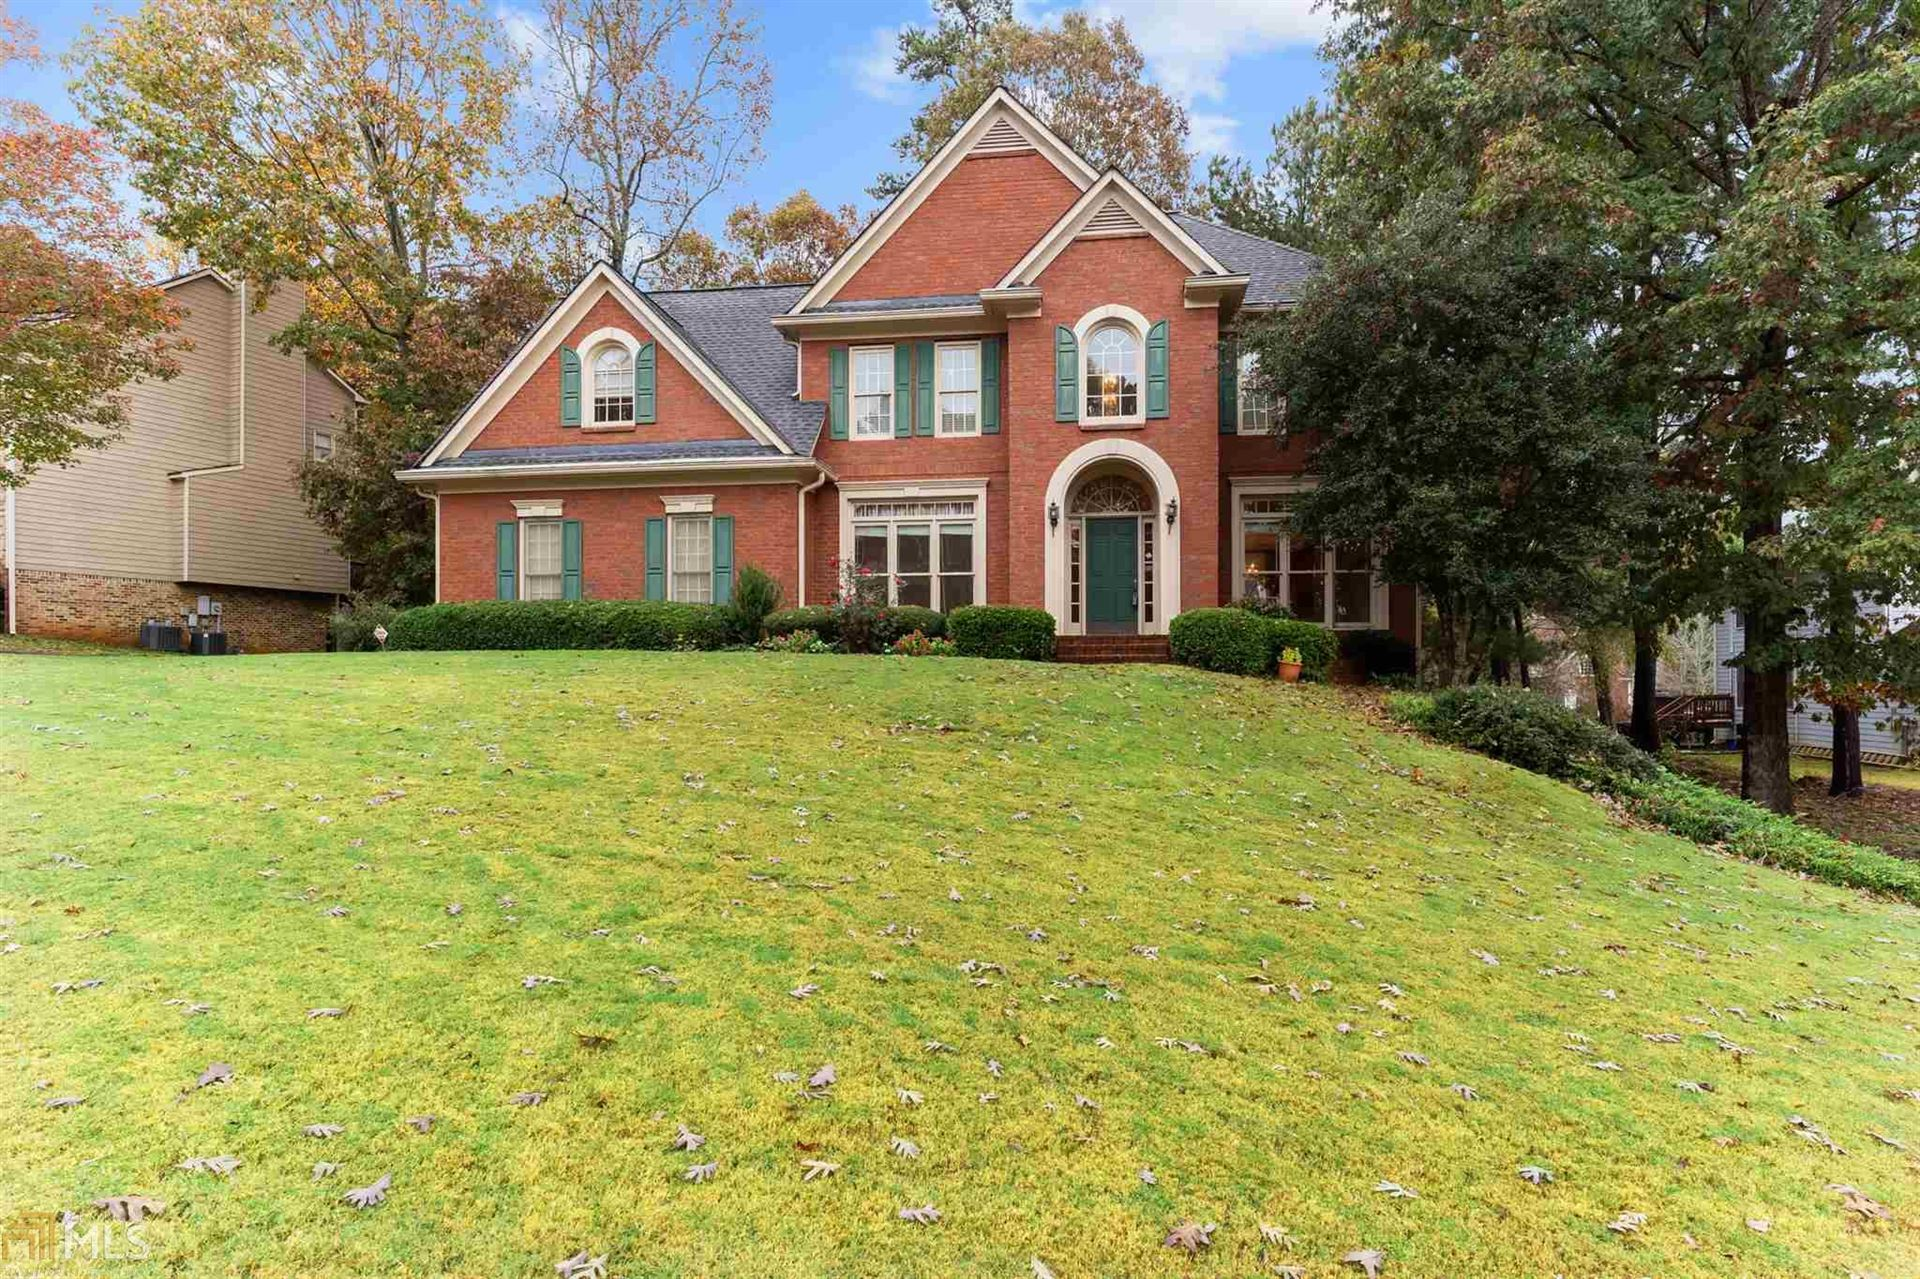 2778 Lake Forest Trl, Lawrenceville, GA 30043 - MLS#: 8879165